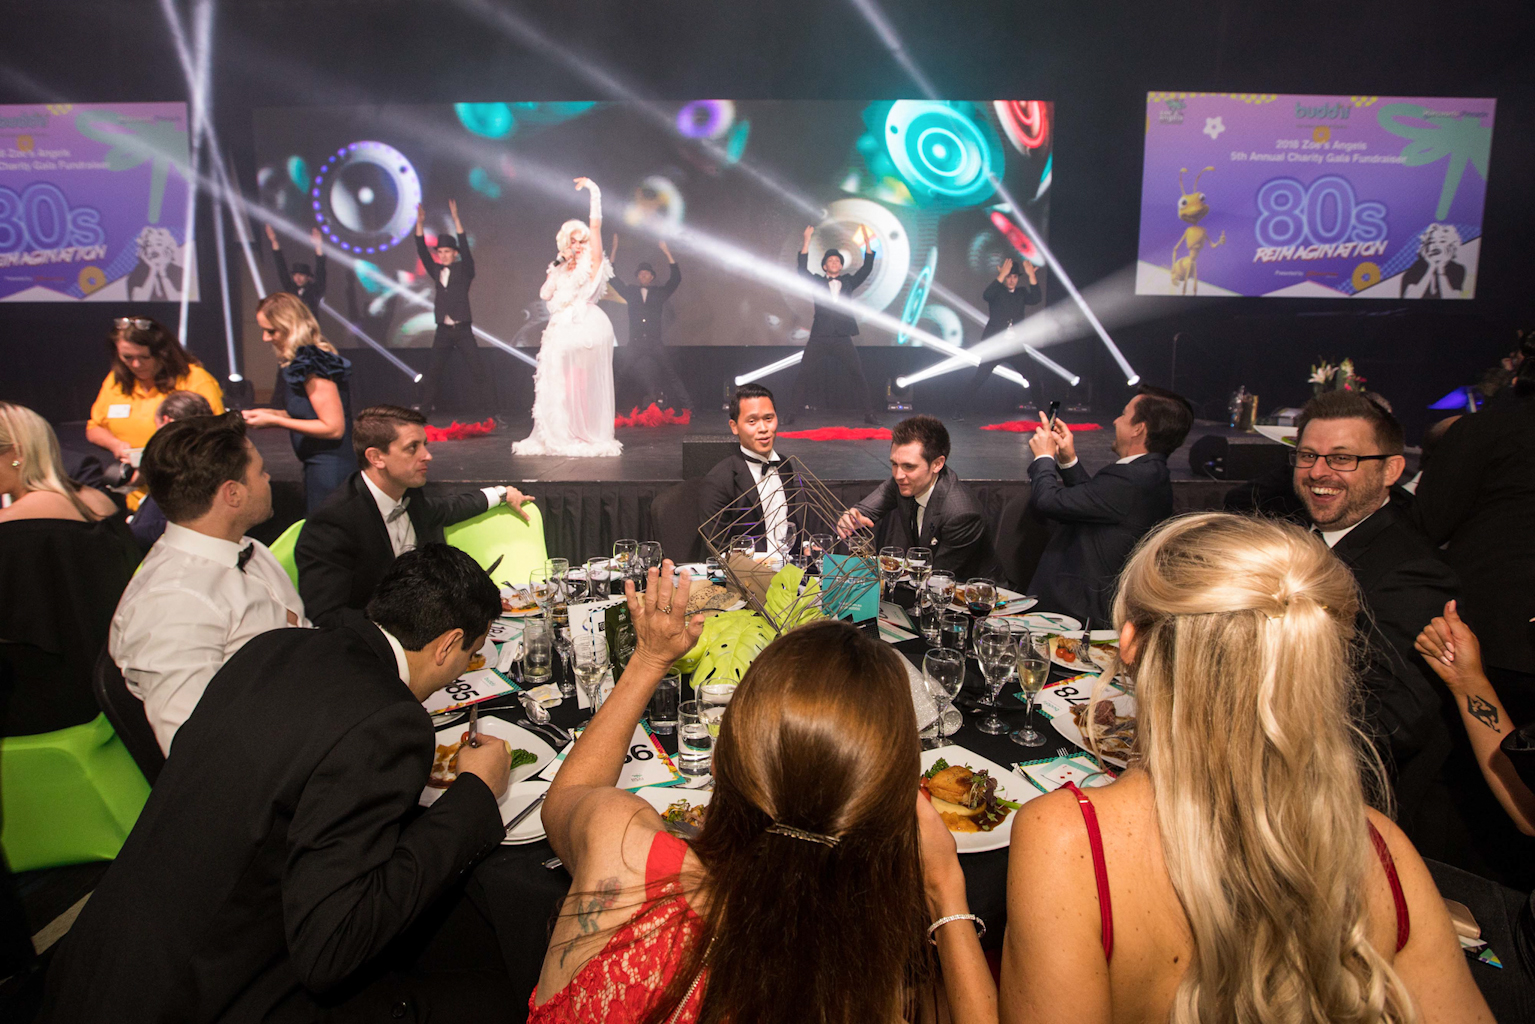 Madonna Entertainment at Zoe's Angels Charity Gala Event held at the Sofitel Hotel in Brisbane